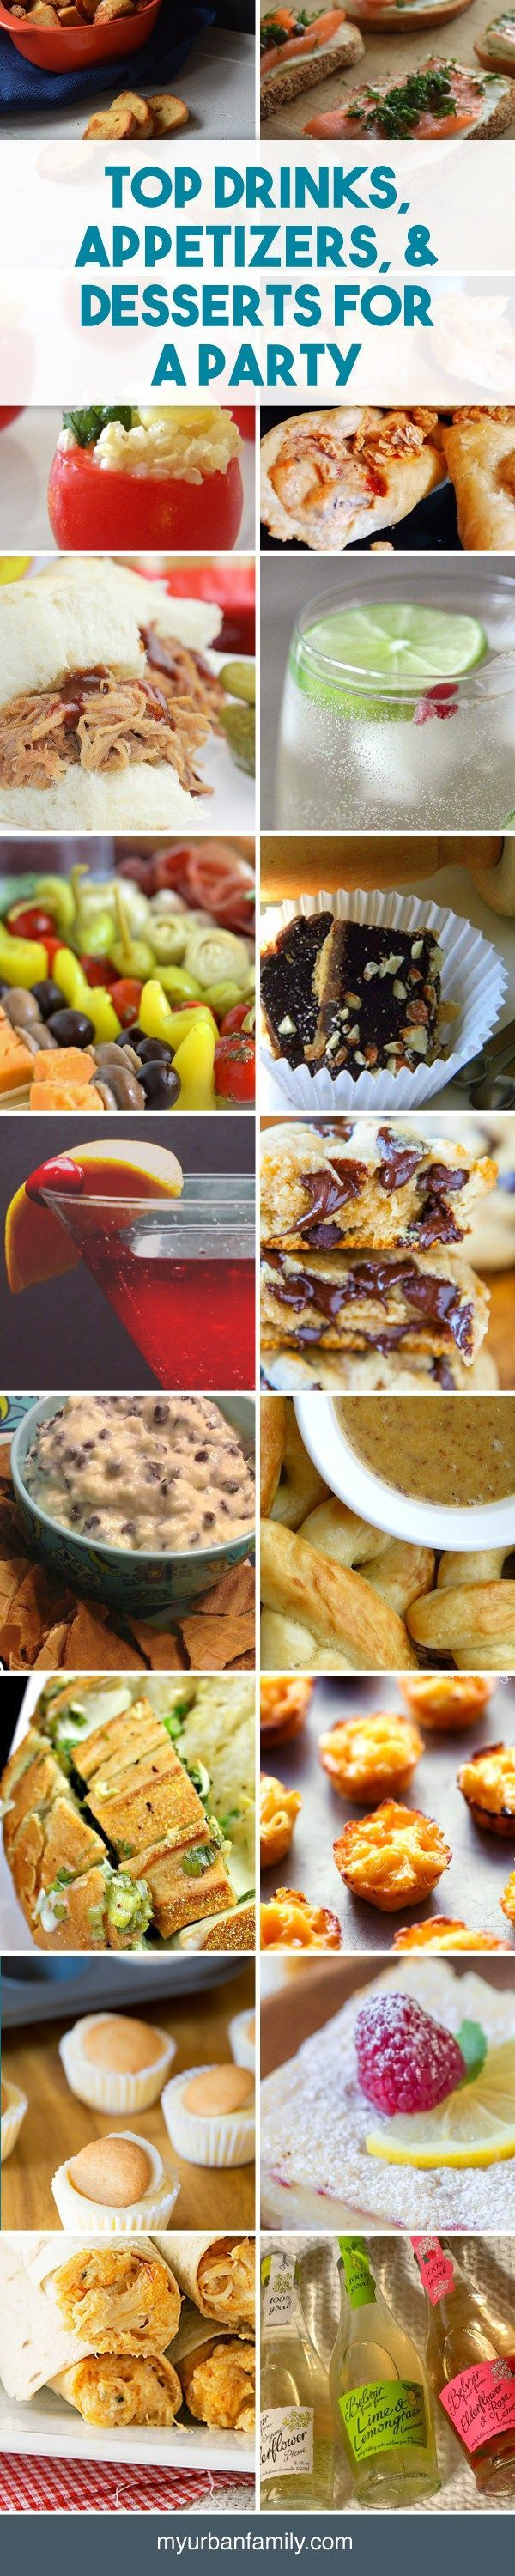 Finding the perfect drink, appetizer or dessert recipe for a party can be overwhelming. Let me narrow it down for you with my favorite options.